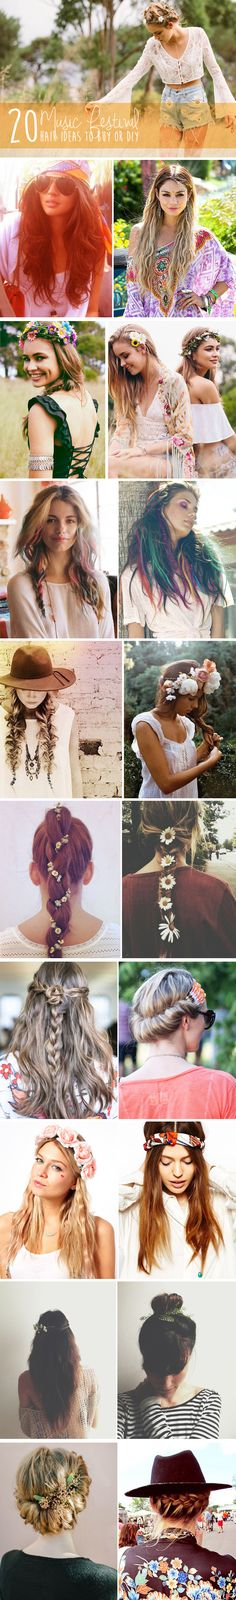 20 summer music festival hair, fashion, and style ideas to buy and diy ; perfect for coachella! 20 summer music festival hair, fashion, and style ideas to buy and diy ; perfect for coachella! Hippie Style, Hippie Man, Boho Style, Music Festival Hair, Summer Music Festivals, Festival Makeup, Diy Festival, Coachella Festival, Festival Style